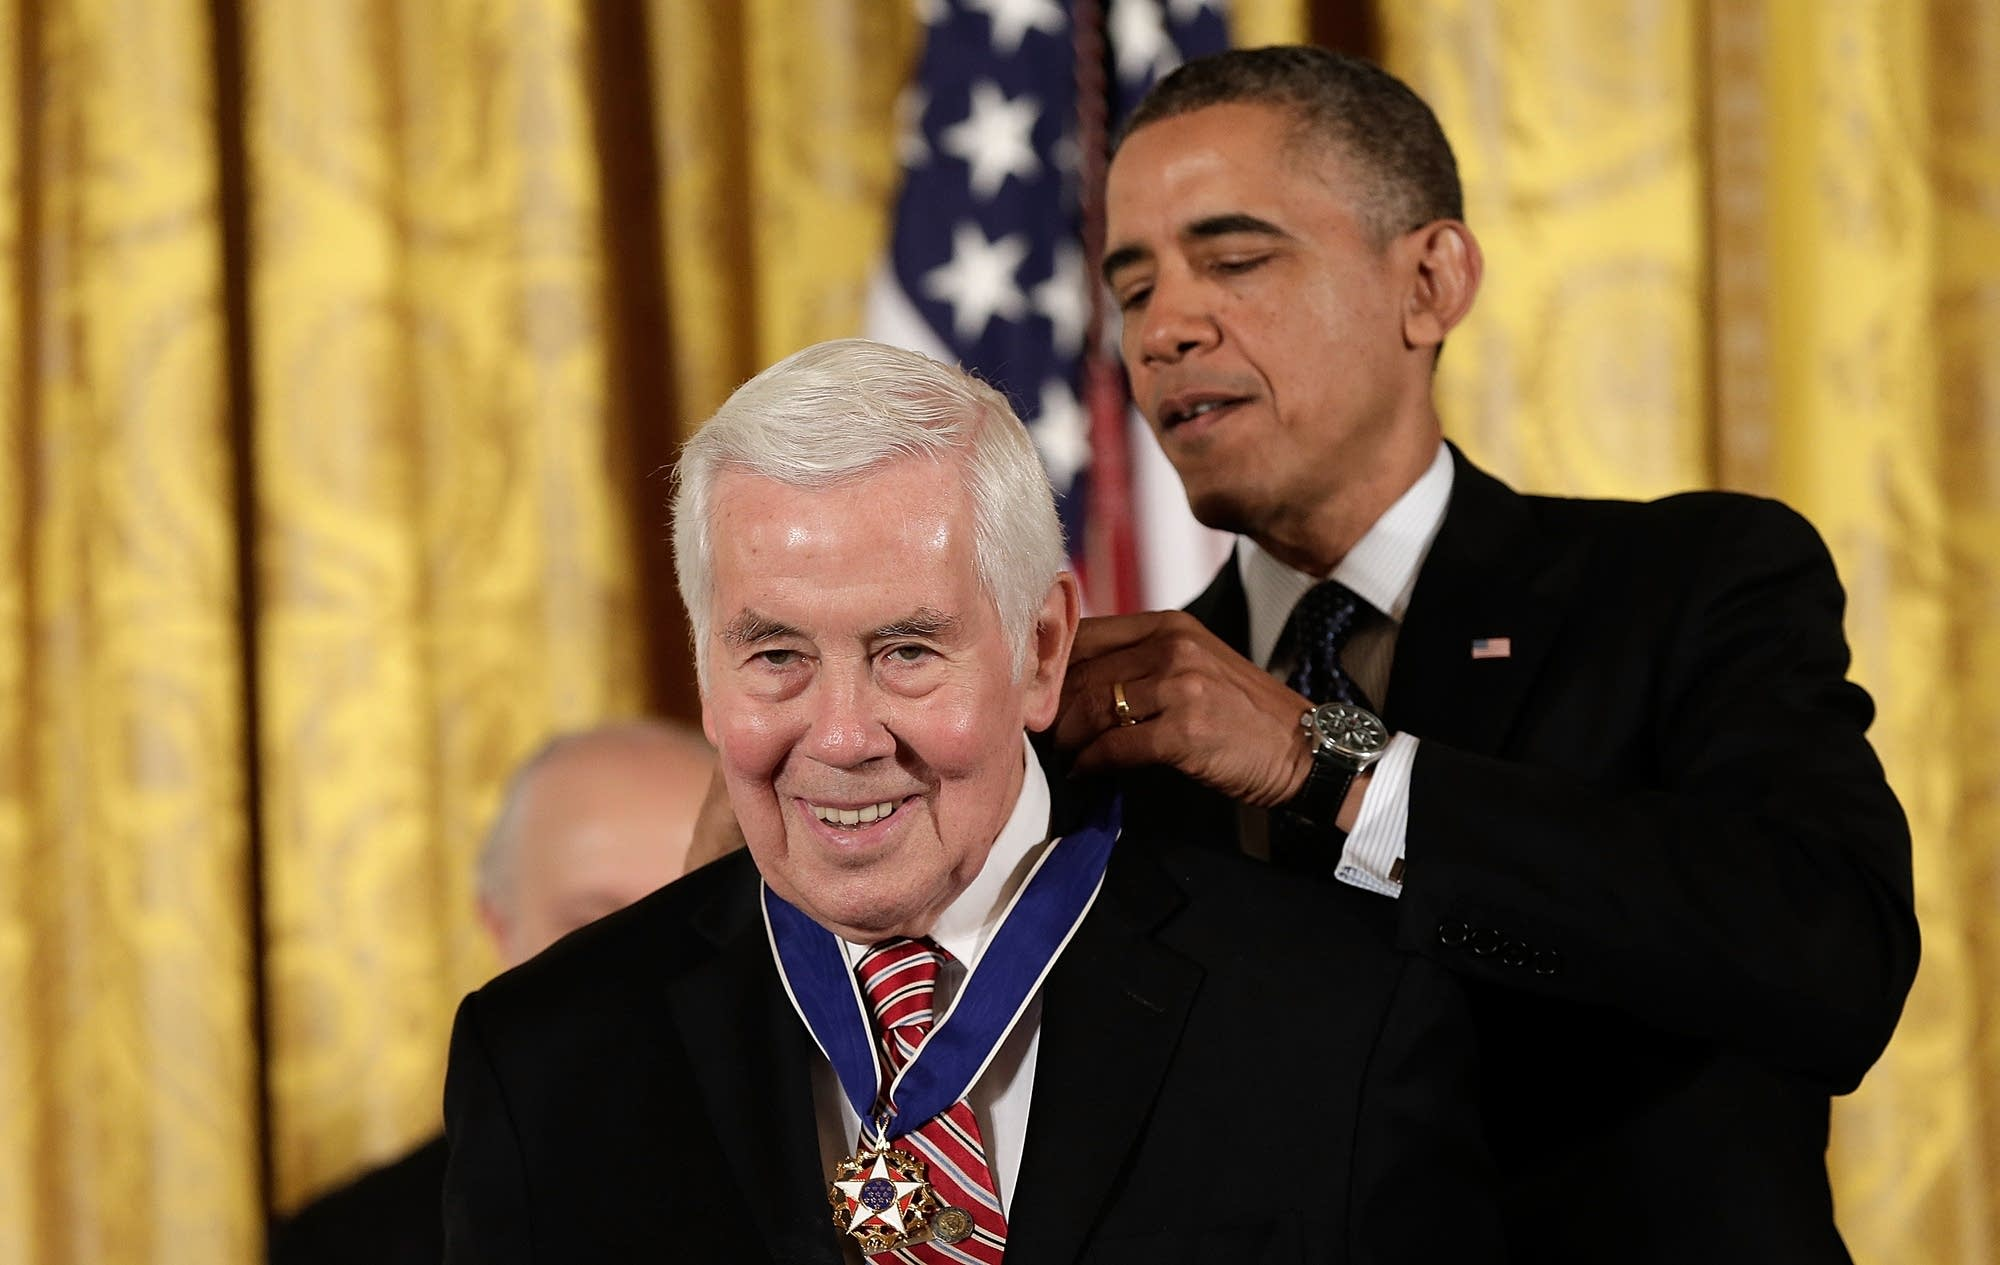 President Obama Awards Presidential Medal Of Freedom to Richard Lugar